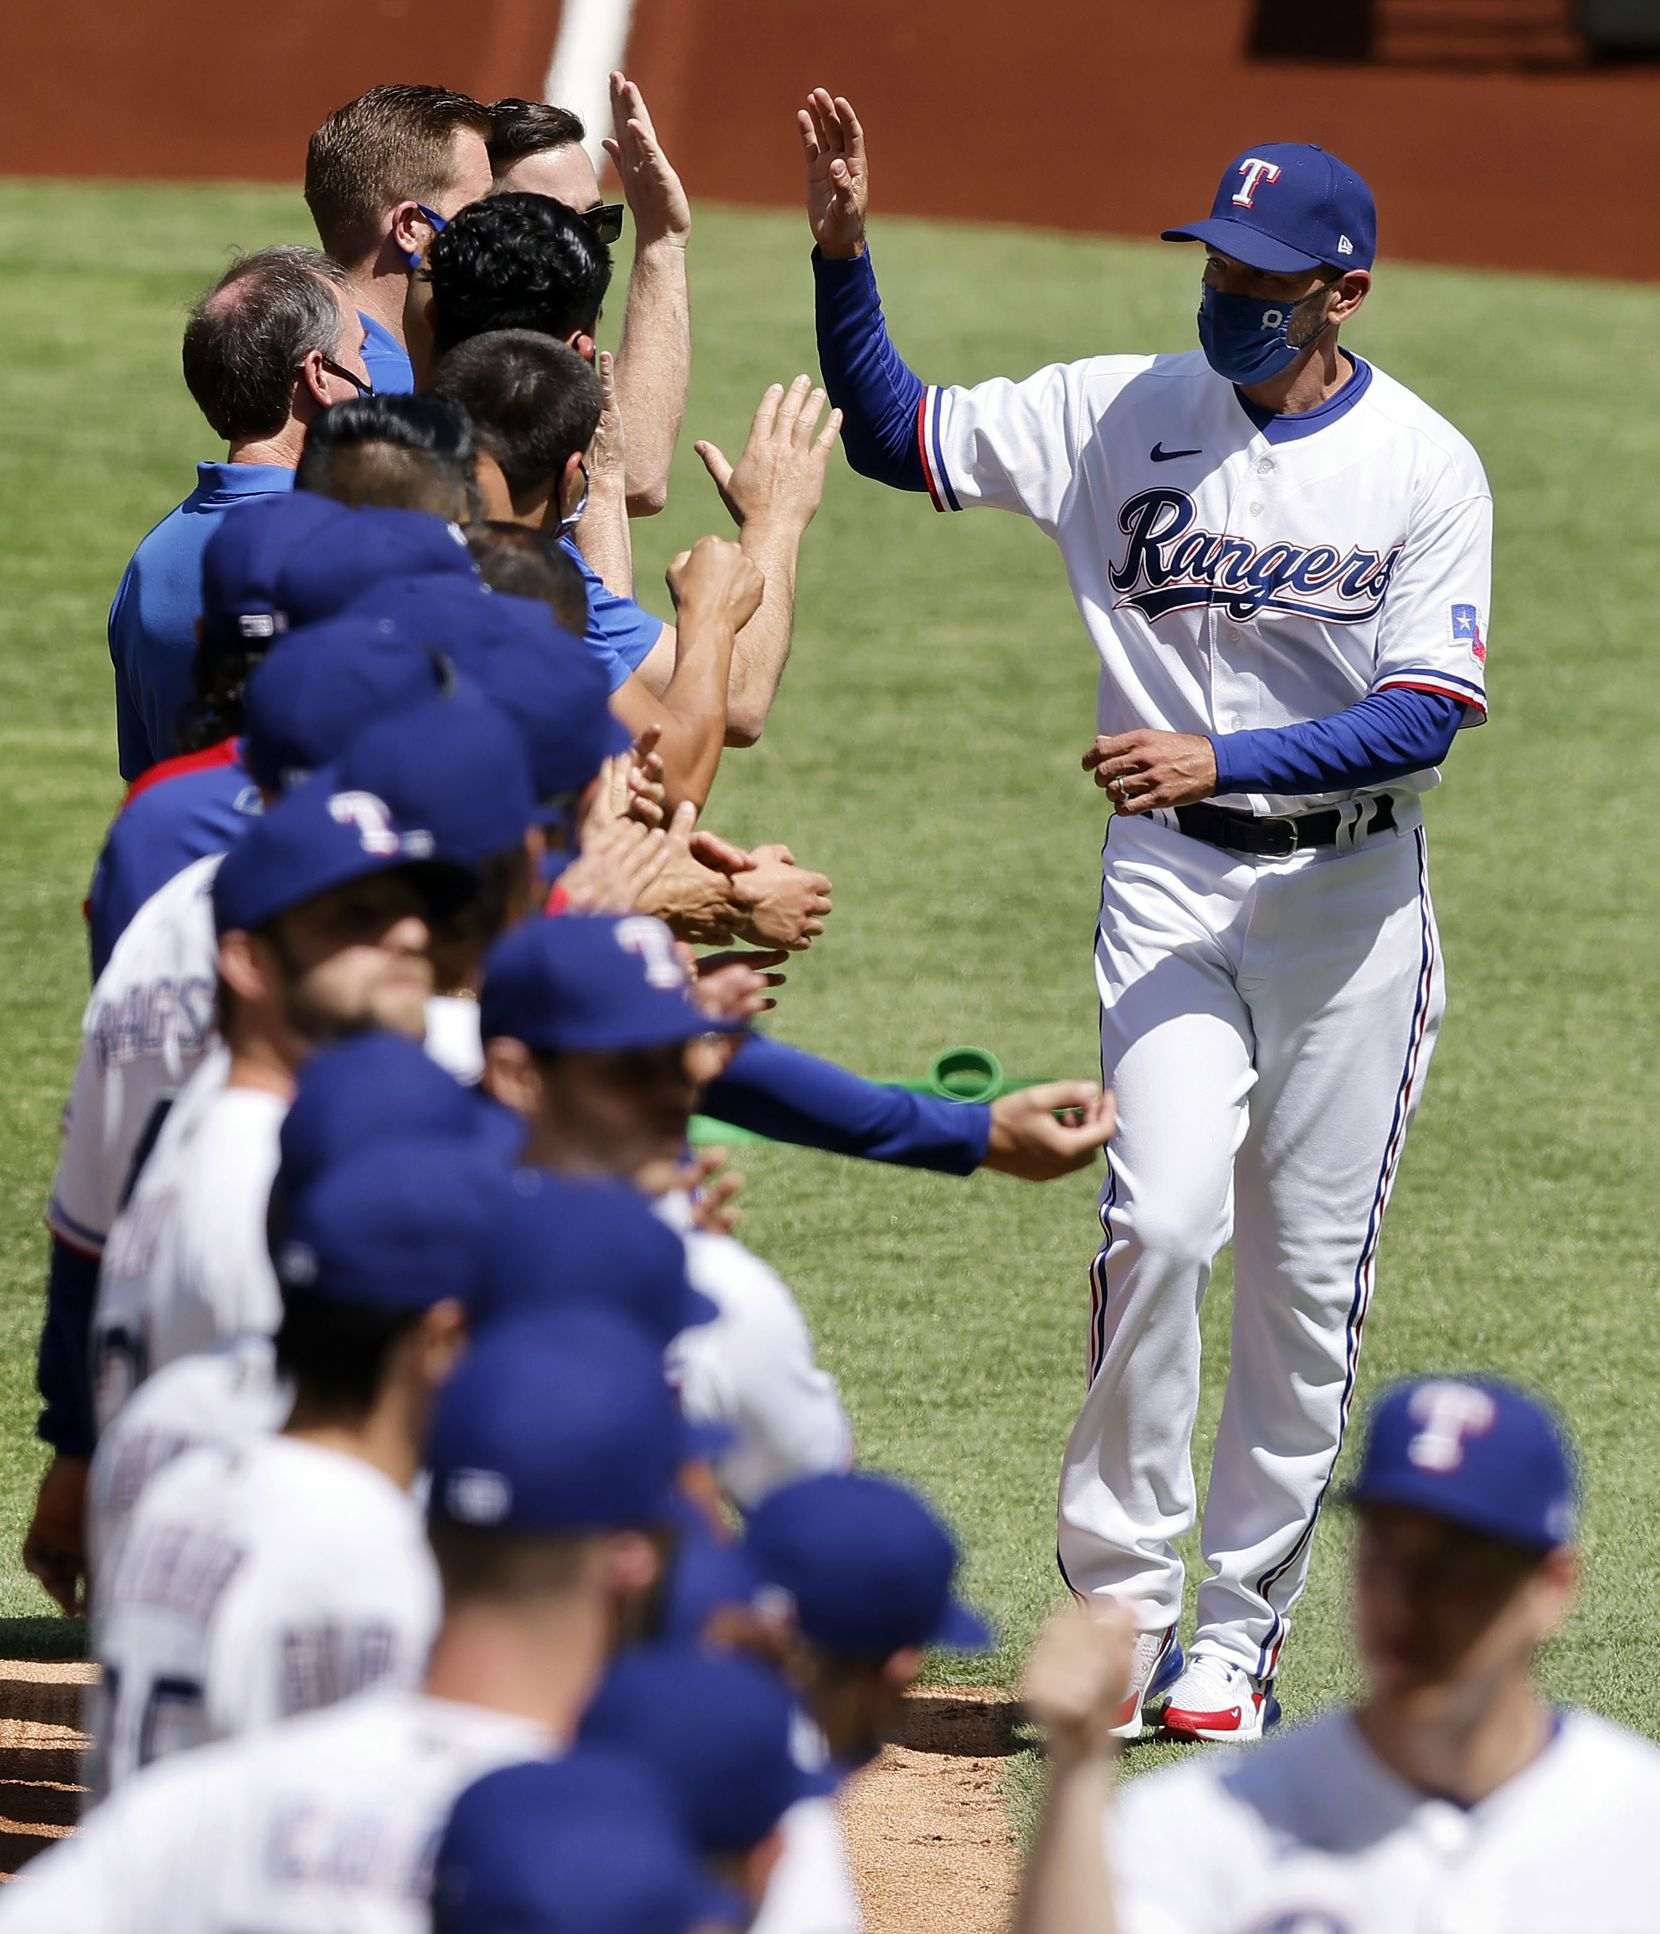 Texas Rangers manager Chris Woodward receives high-fives from his players during the team introduction at Globe Life Field in Arlington, Monday, April 5, 2021. The Texas Rangers were facing the Toronto Blue Jays in their home opener. (Tom Fox/The Dallas Morning News)